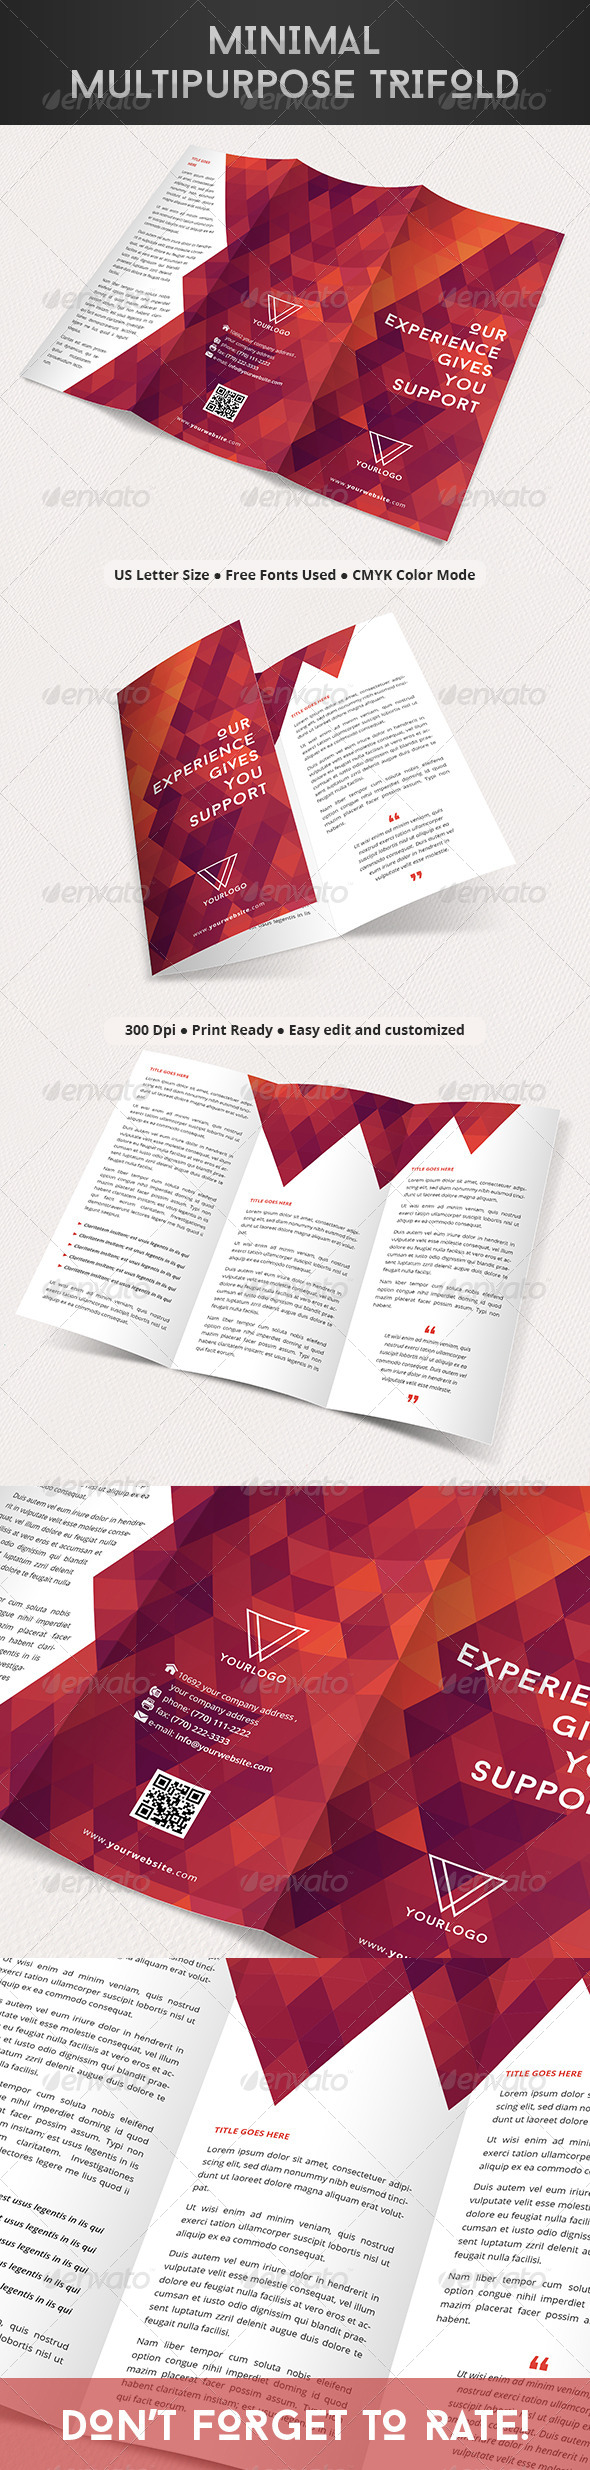 GraphicRiver Minimal Multipurpose Trifold 8151041